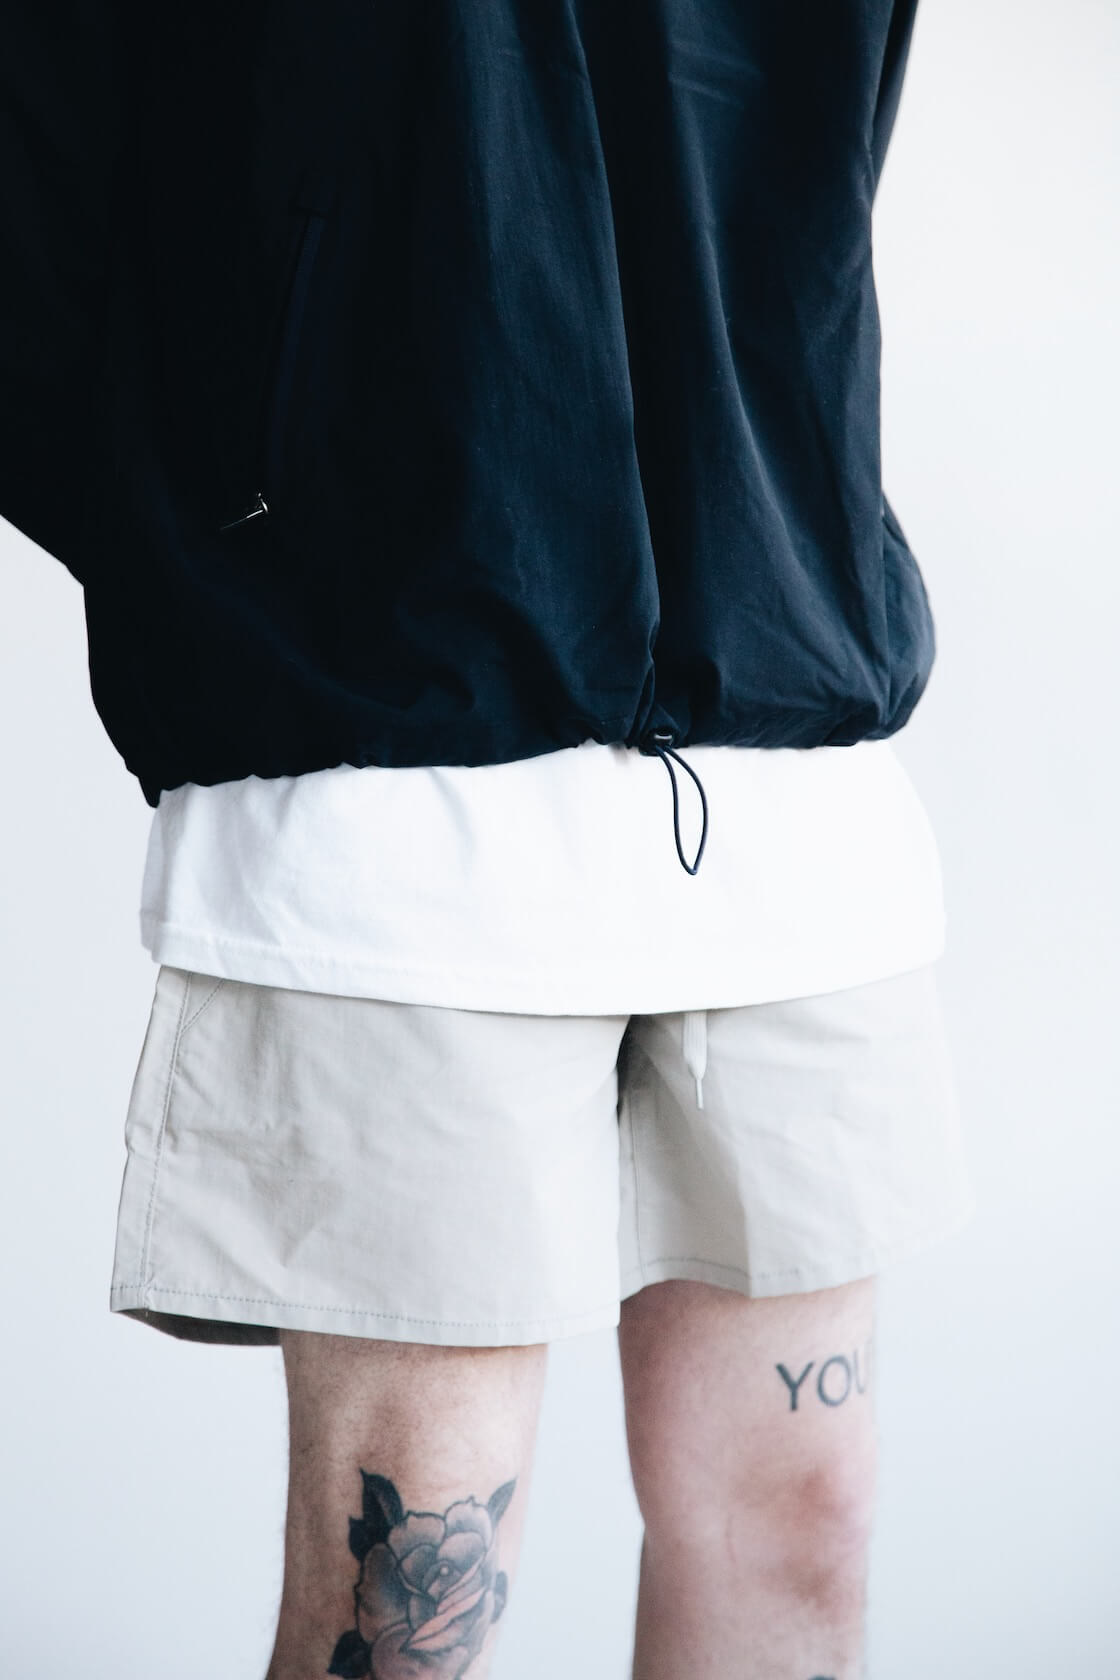 UC Jacket from Adsum, Clark Pocket Tee from Lady White Co., Site Shorts from Adsum on body